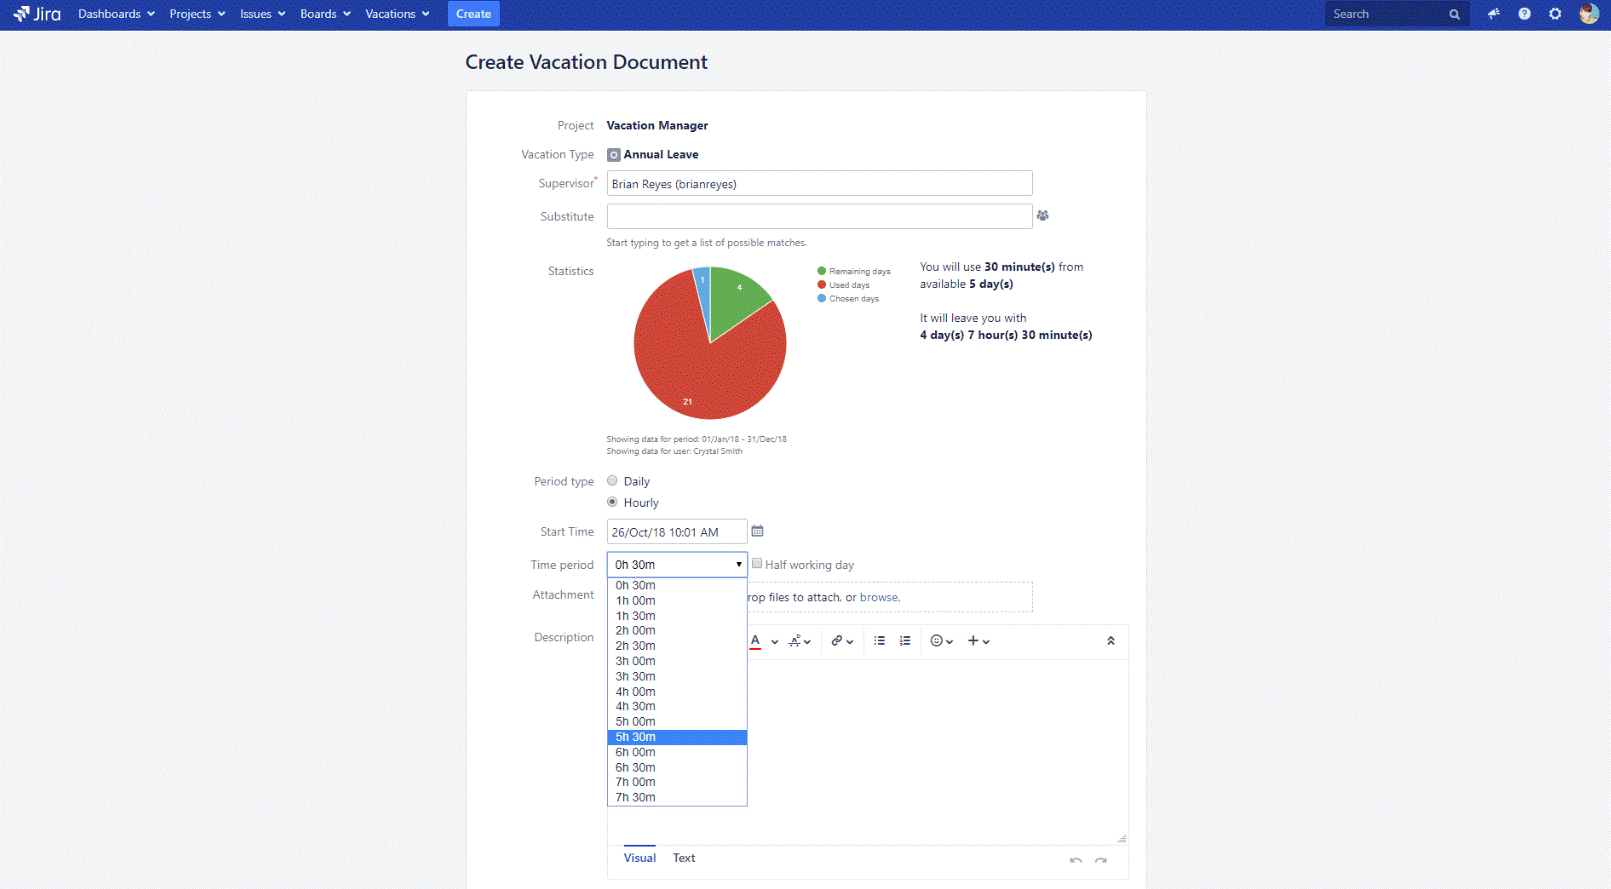 Vacation manager fur jira, vacation manager for jira screen, how it works